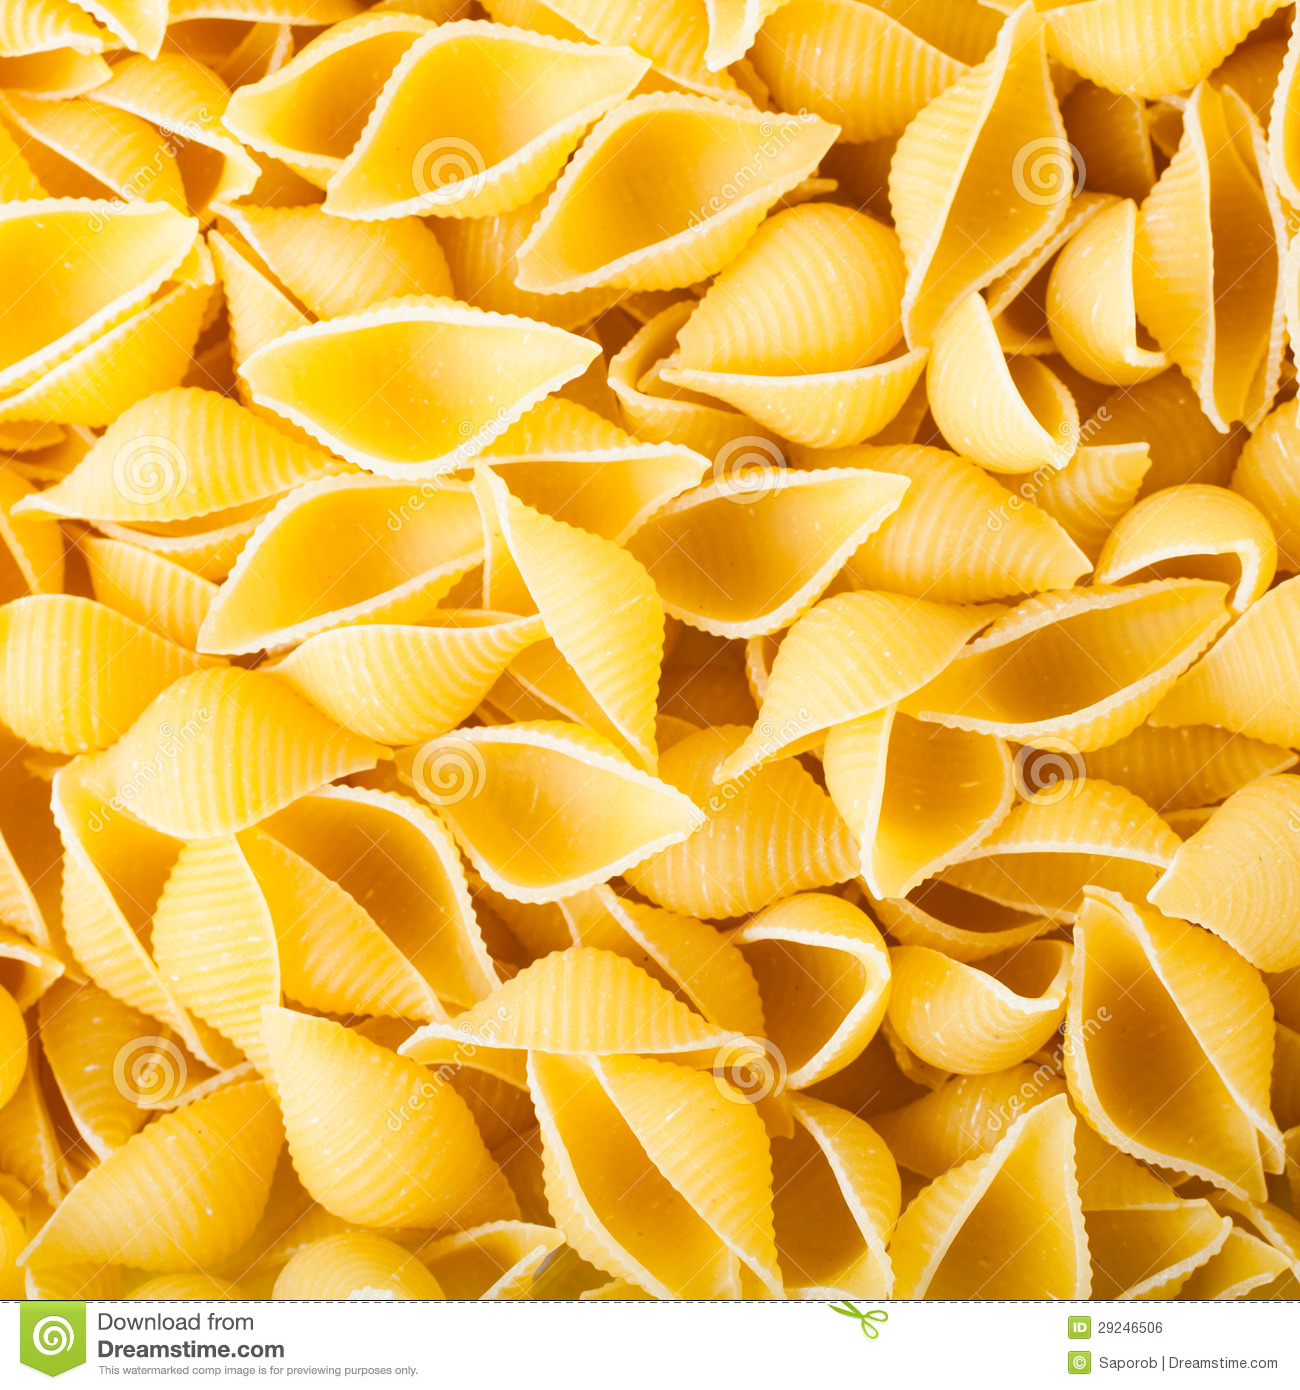 Download Conchiglie da massa foto de stock. Imagem de closeup - 29246506